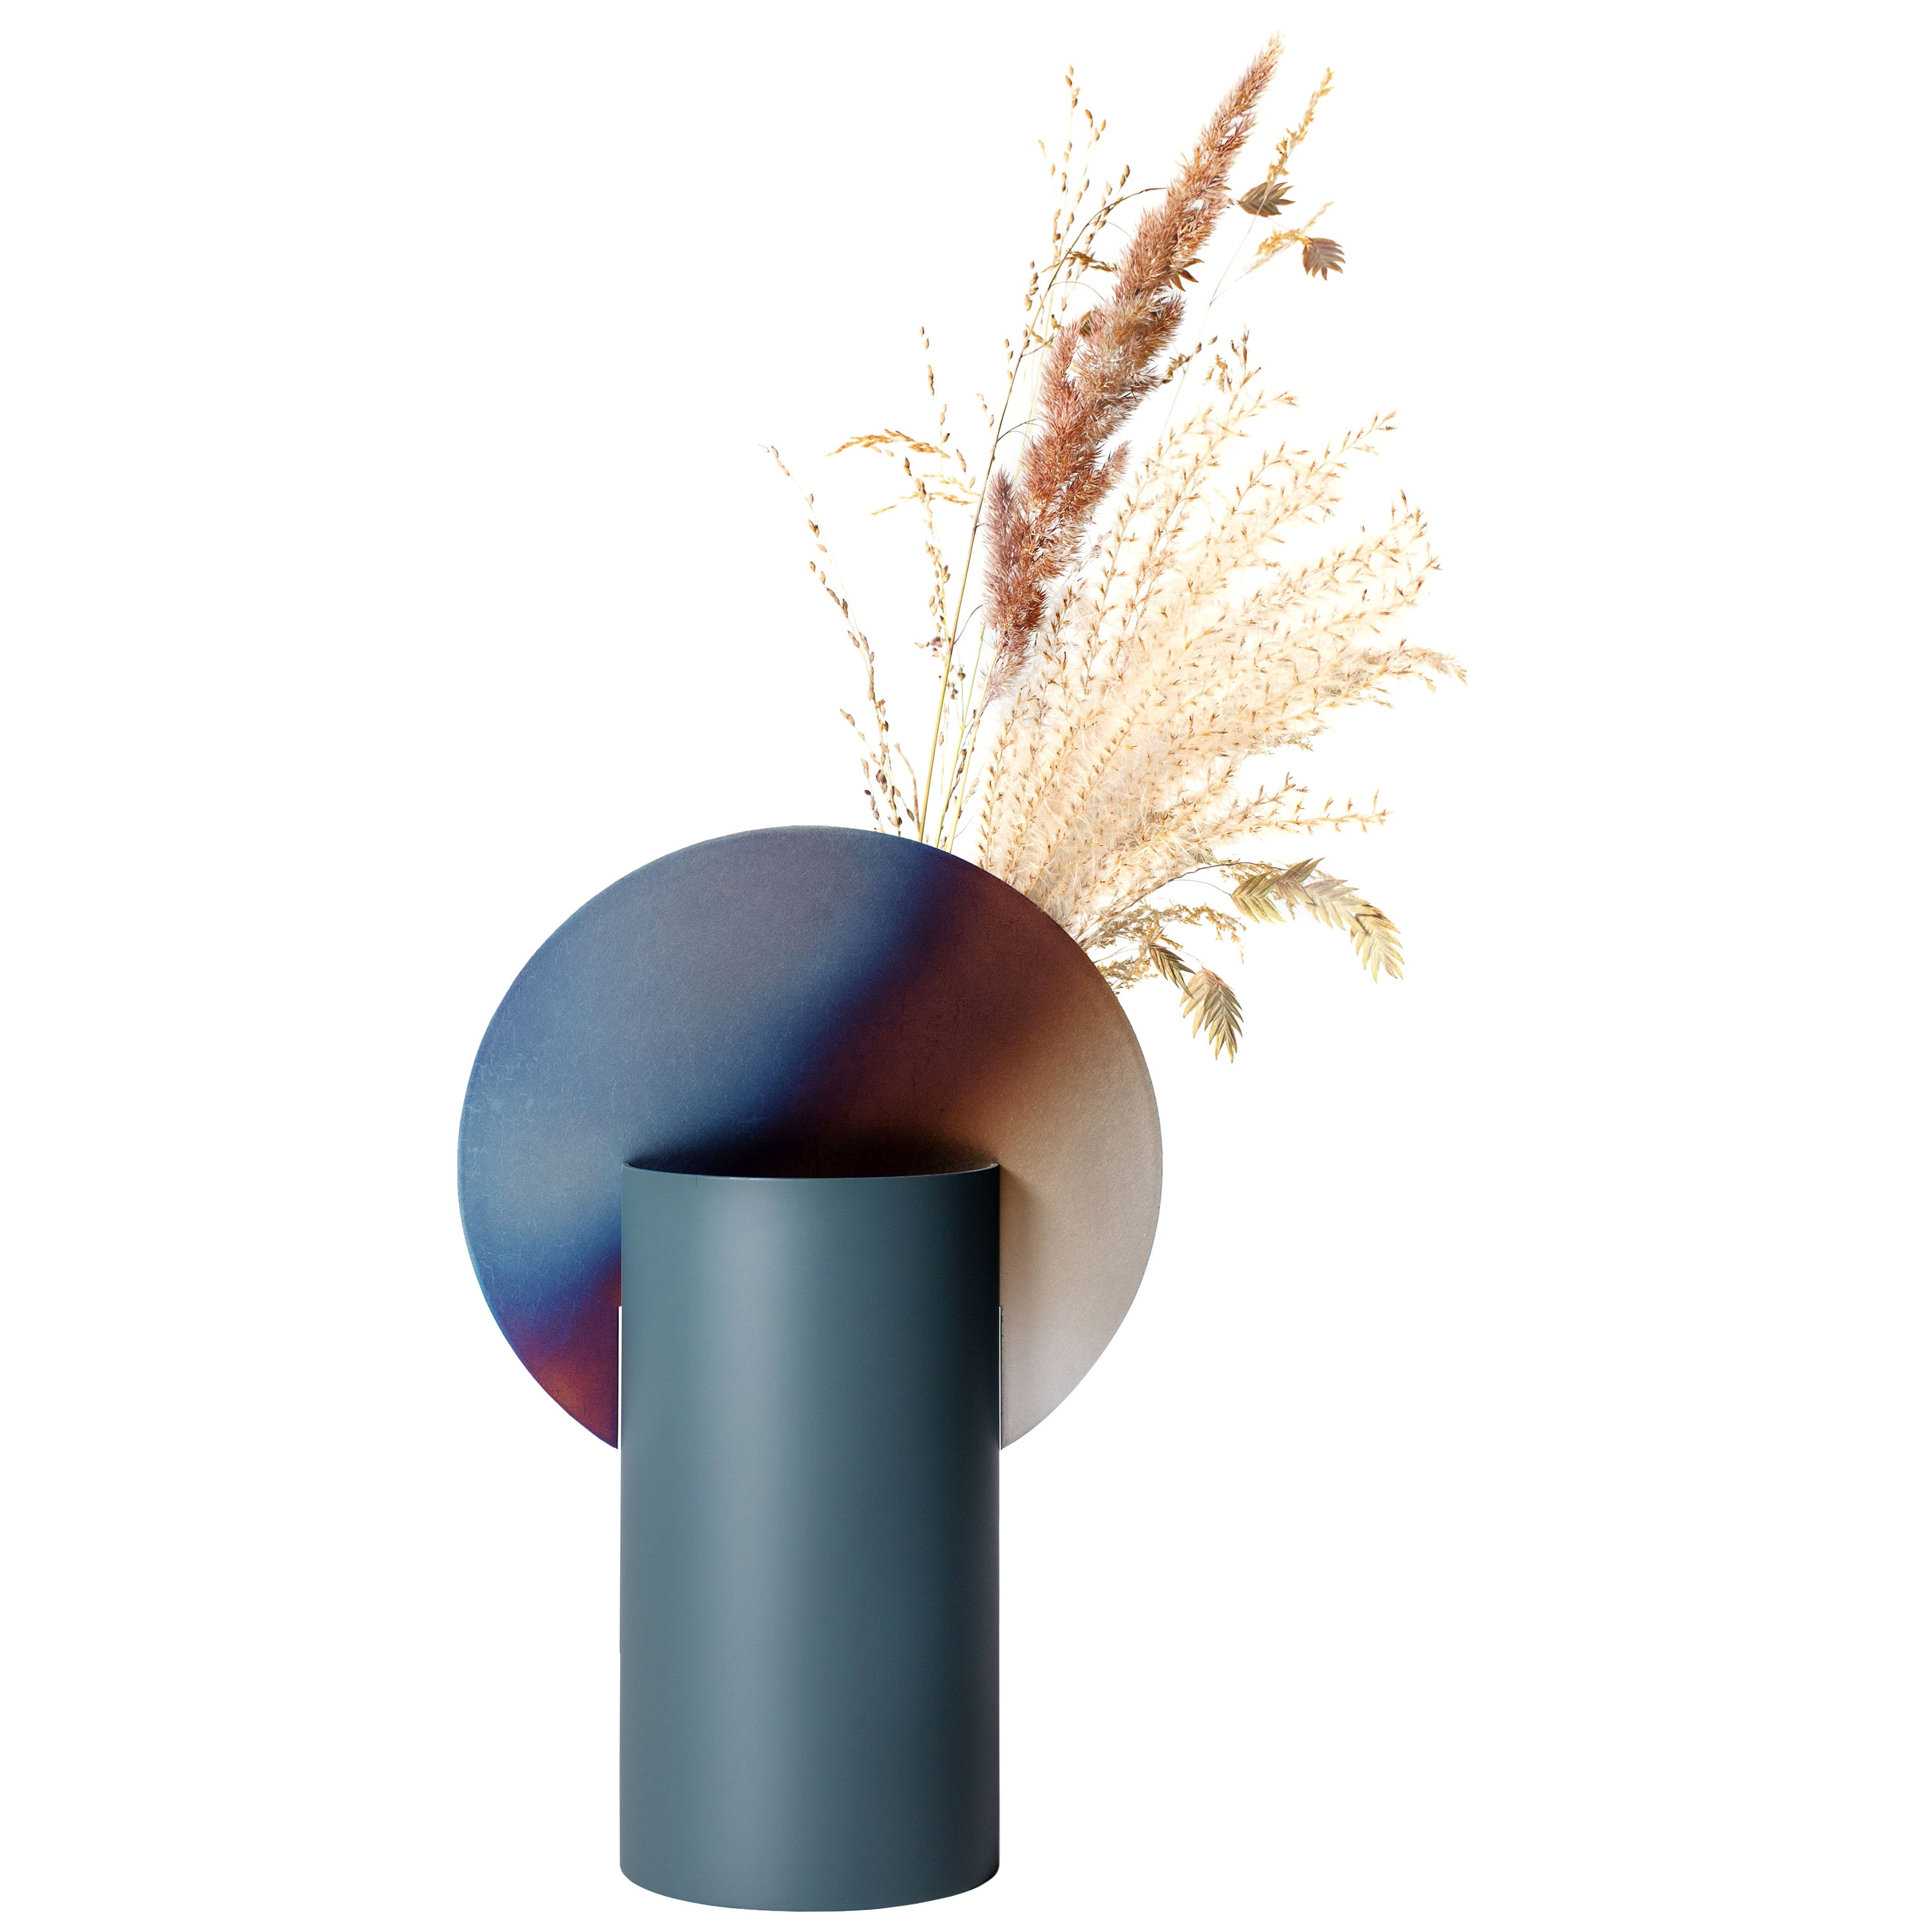 Limited Edition Modern Malevich Vase CSL5 by NOOM with Burned Steel